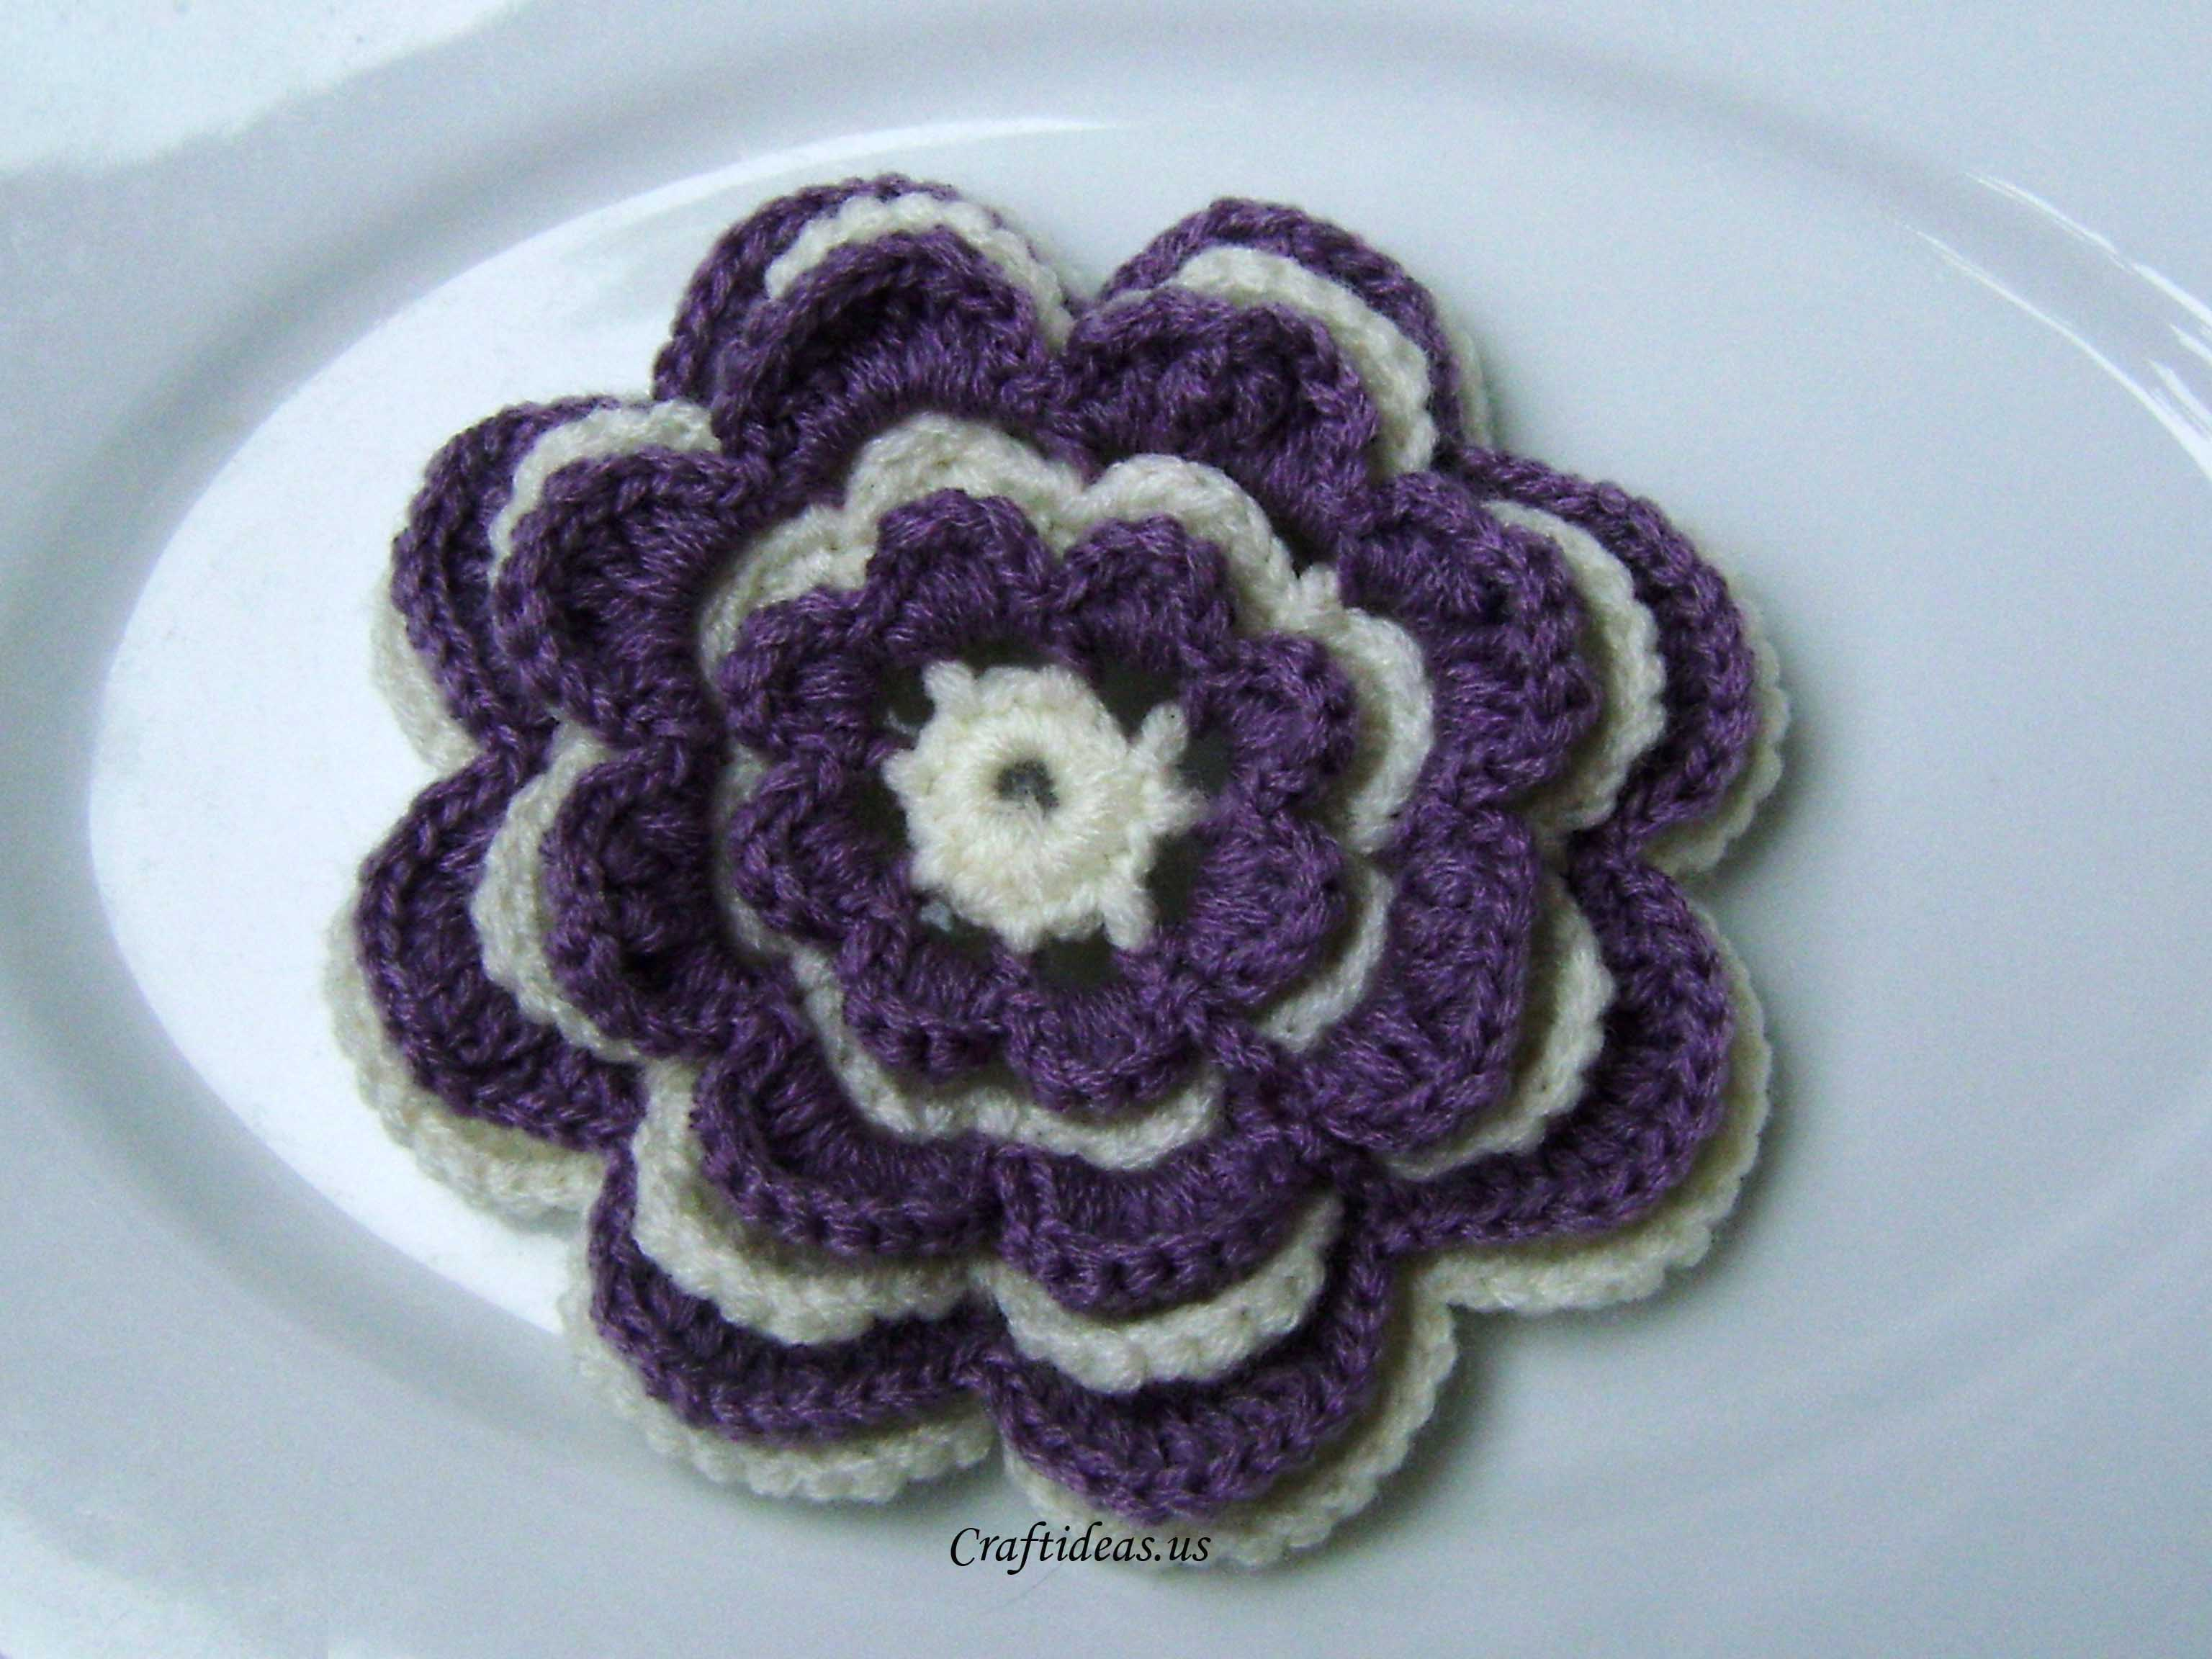 How To Crochet Tutorial Pictures : Crochet flower tutorial - Craft Ideas